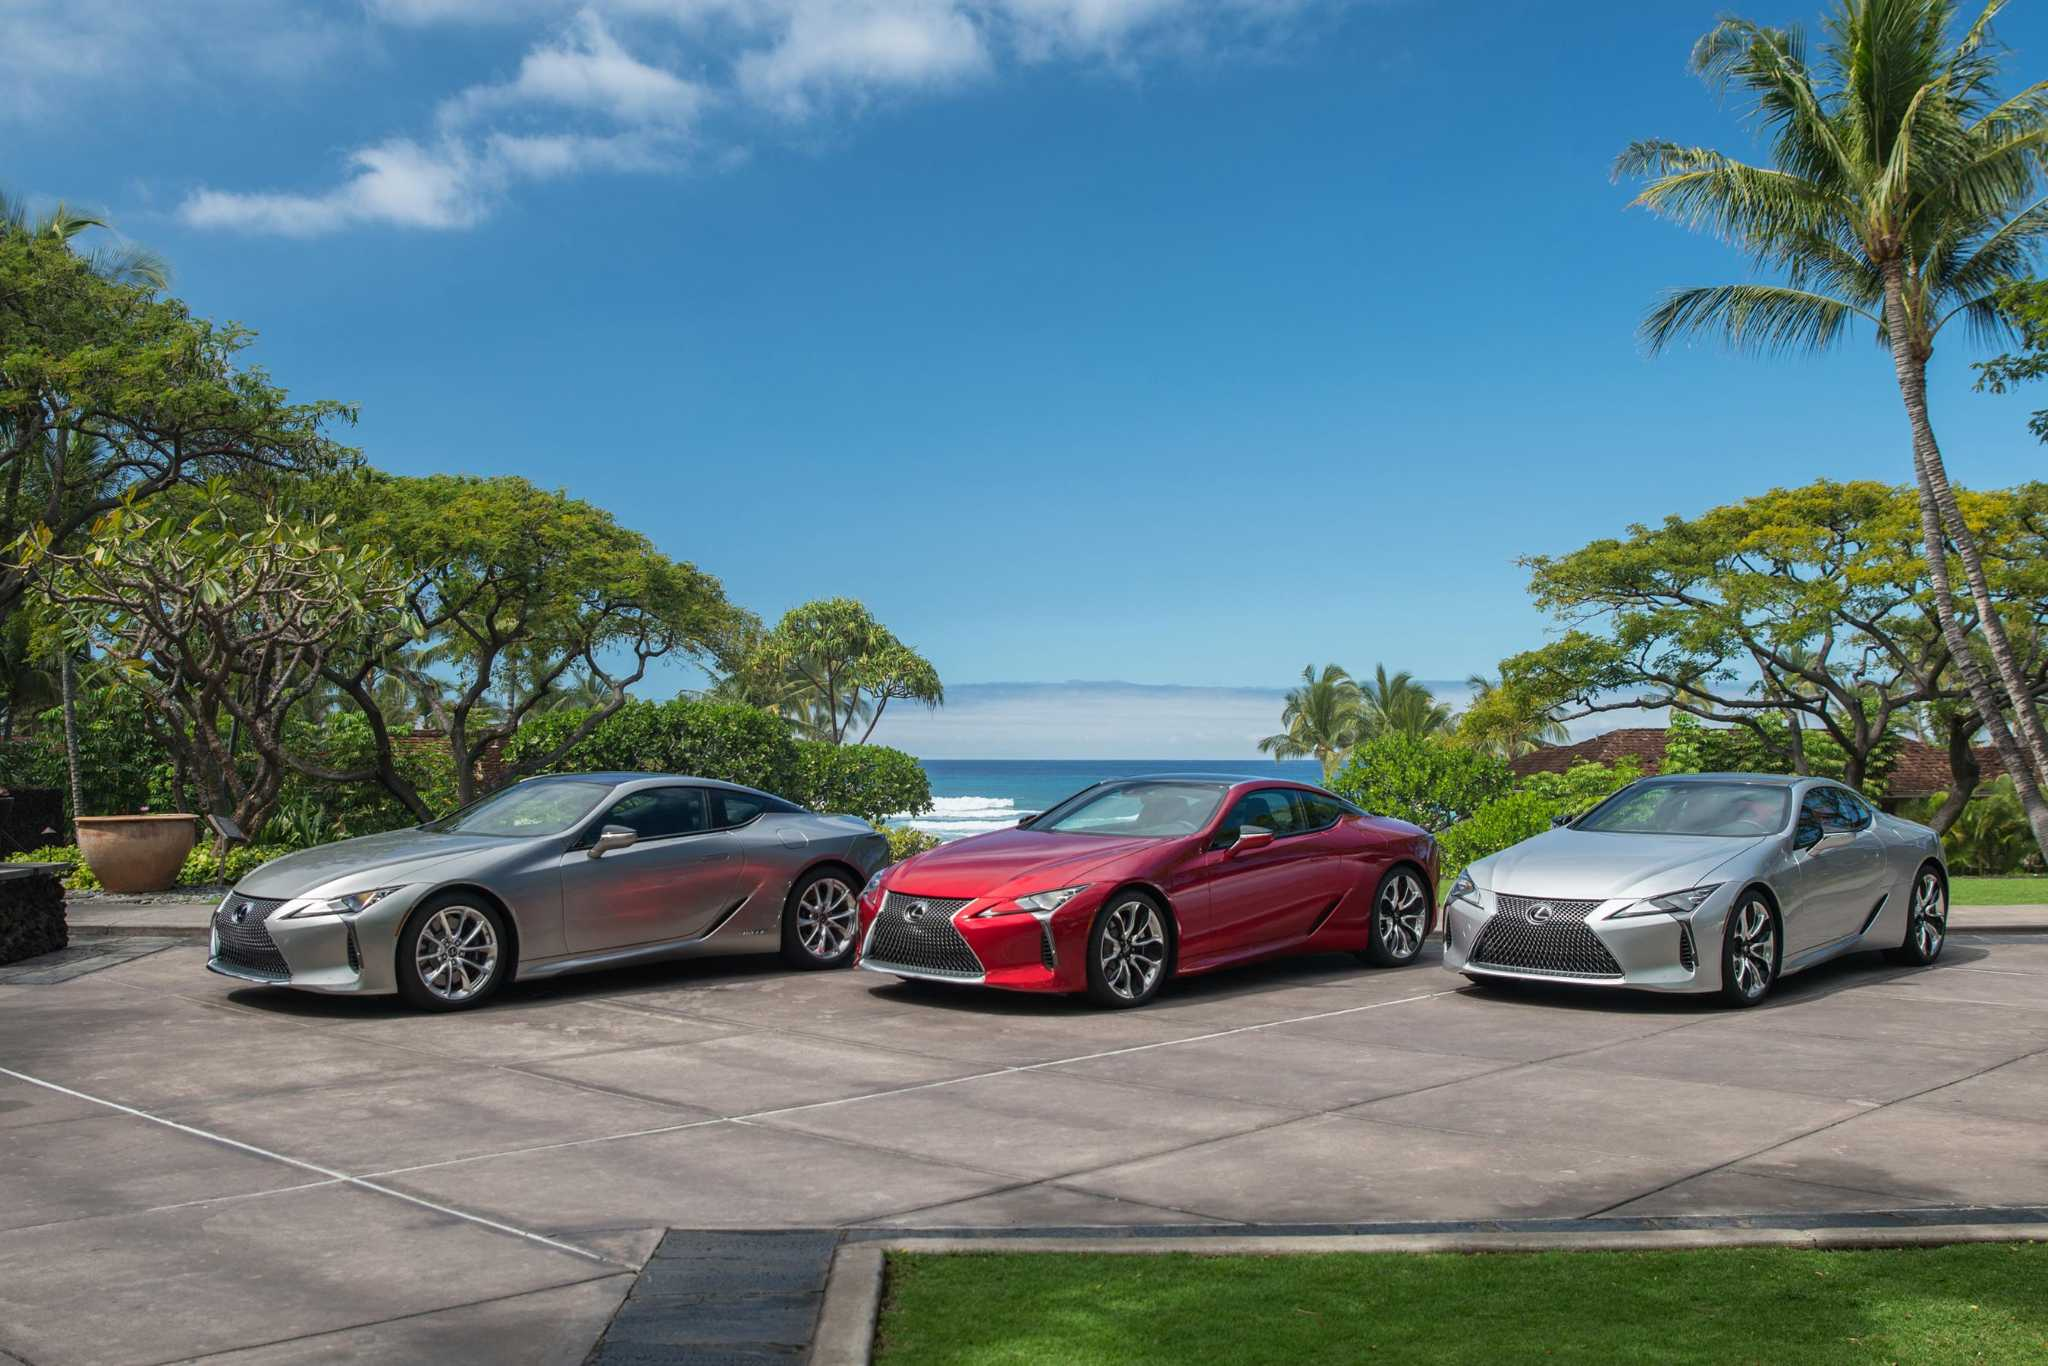 Flagship model serves up elite international Grand Touring Coupes